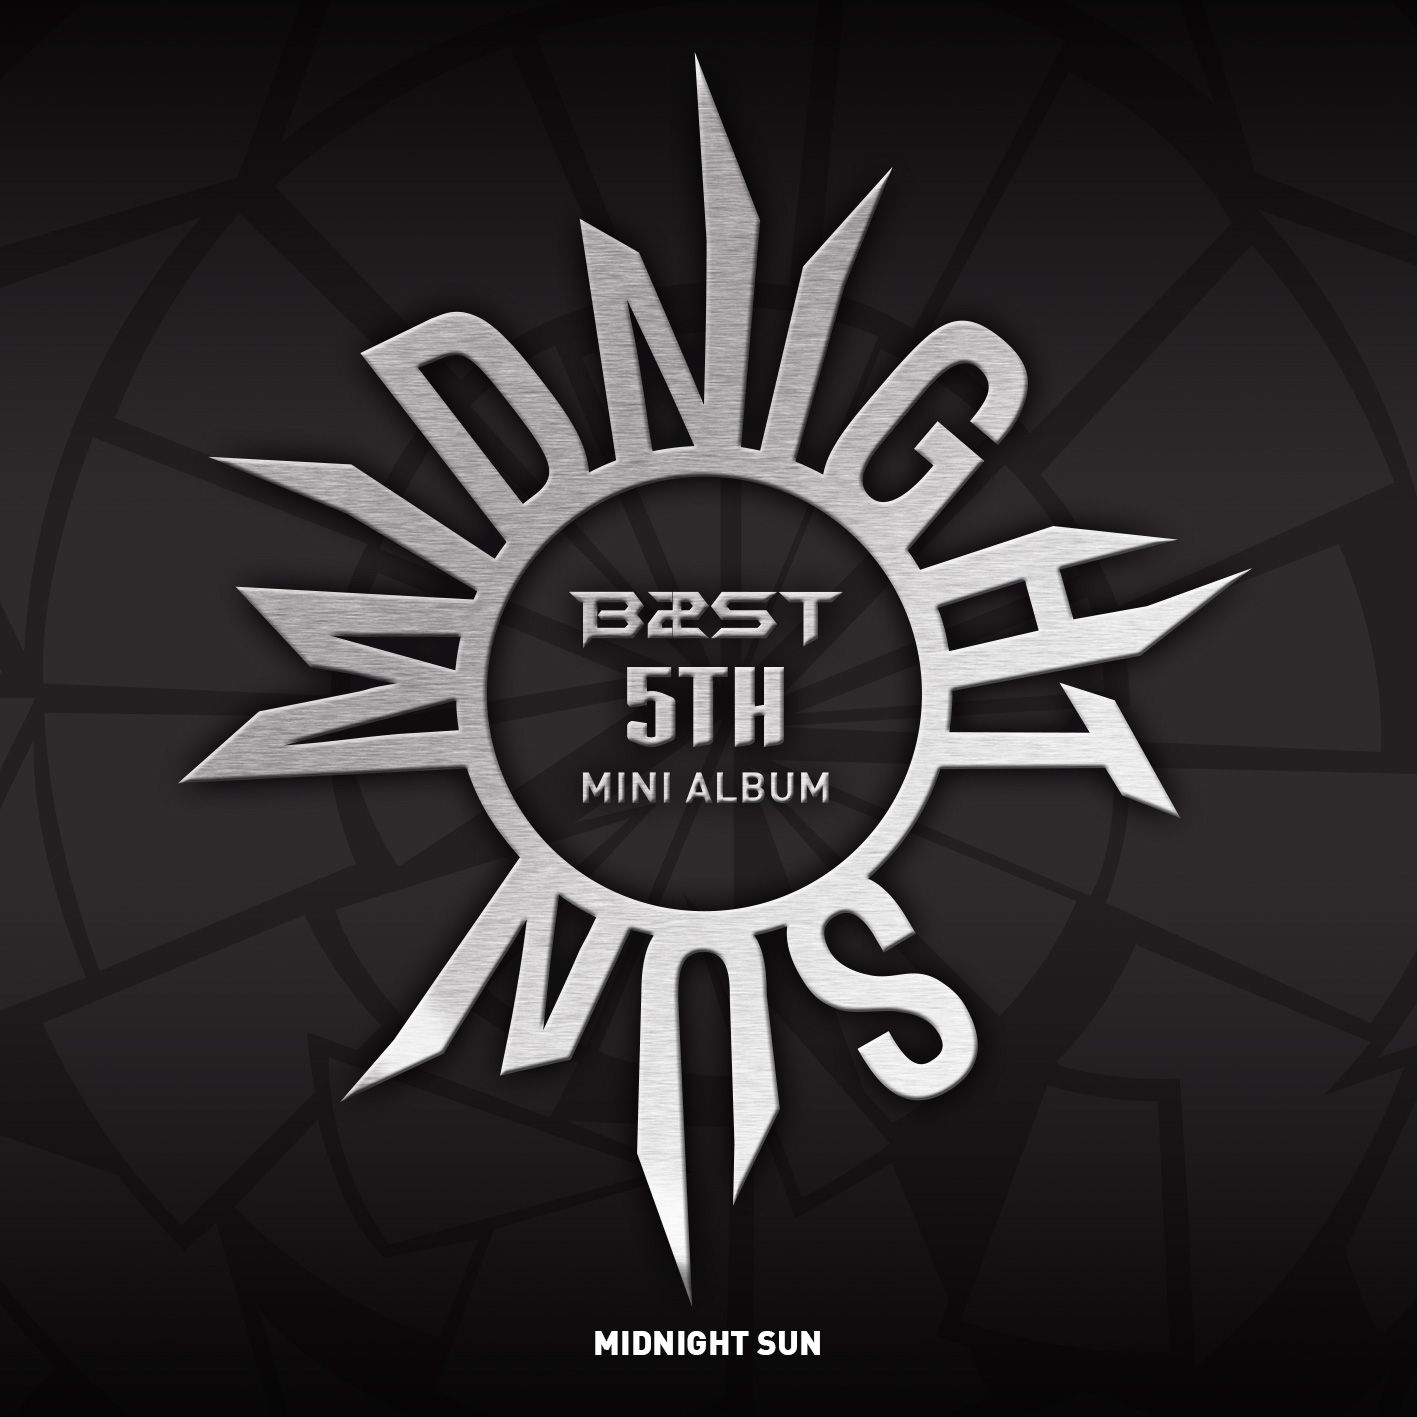 [Mini Album] BEAST (B2ST) - Midnight Sun [5th Mini Album]